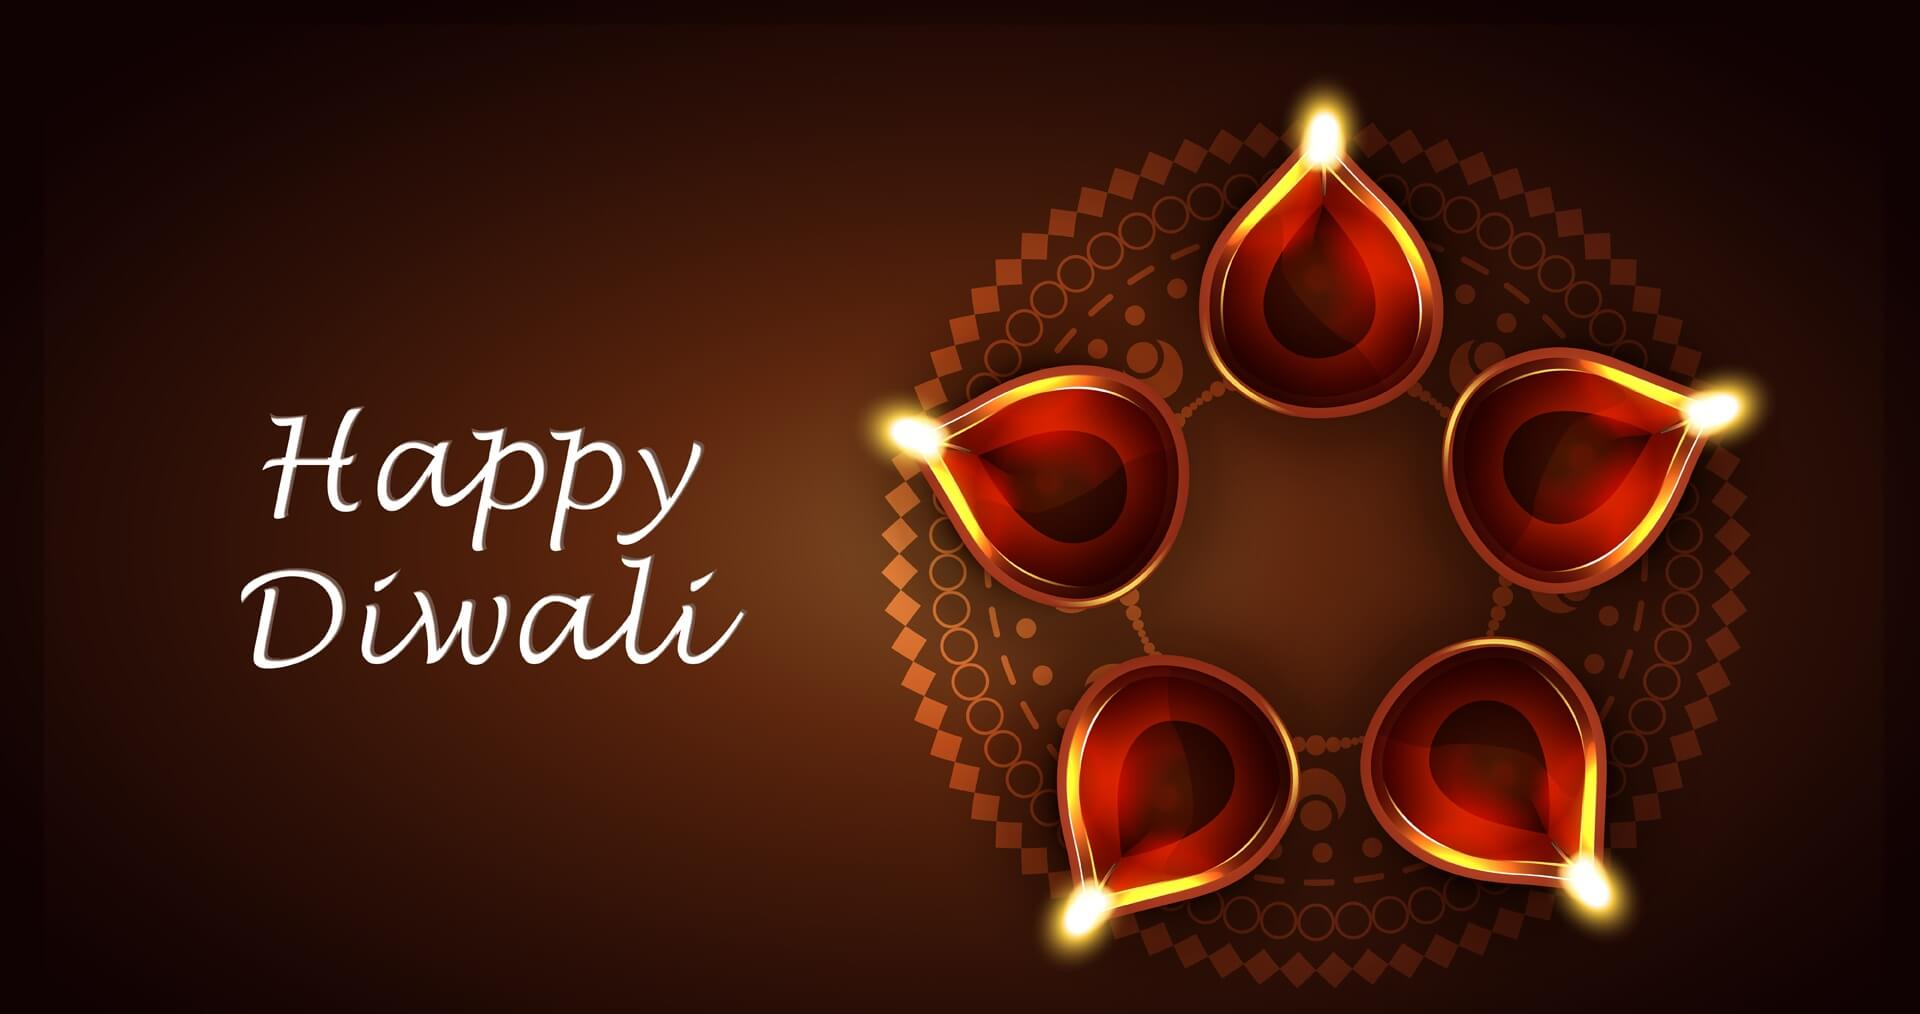 Happy diwali greeting card HD